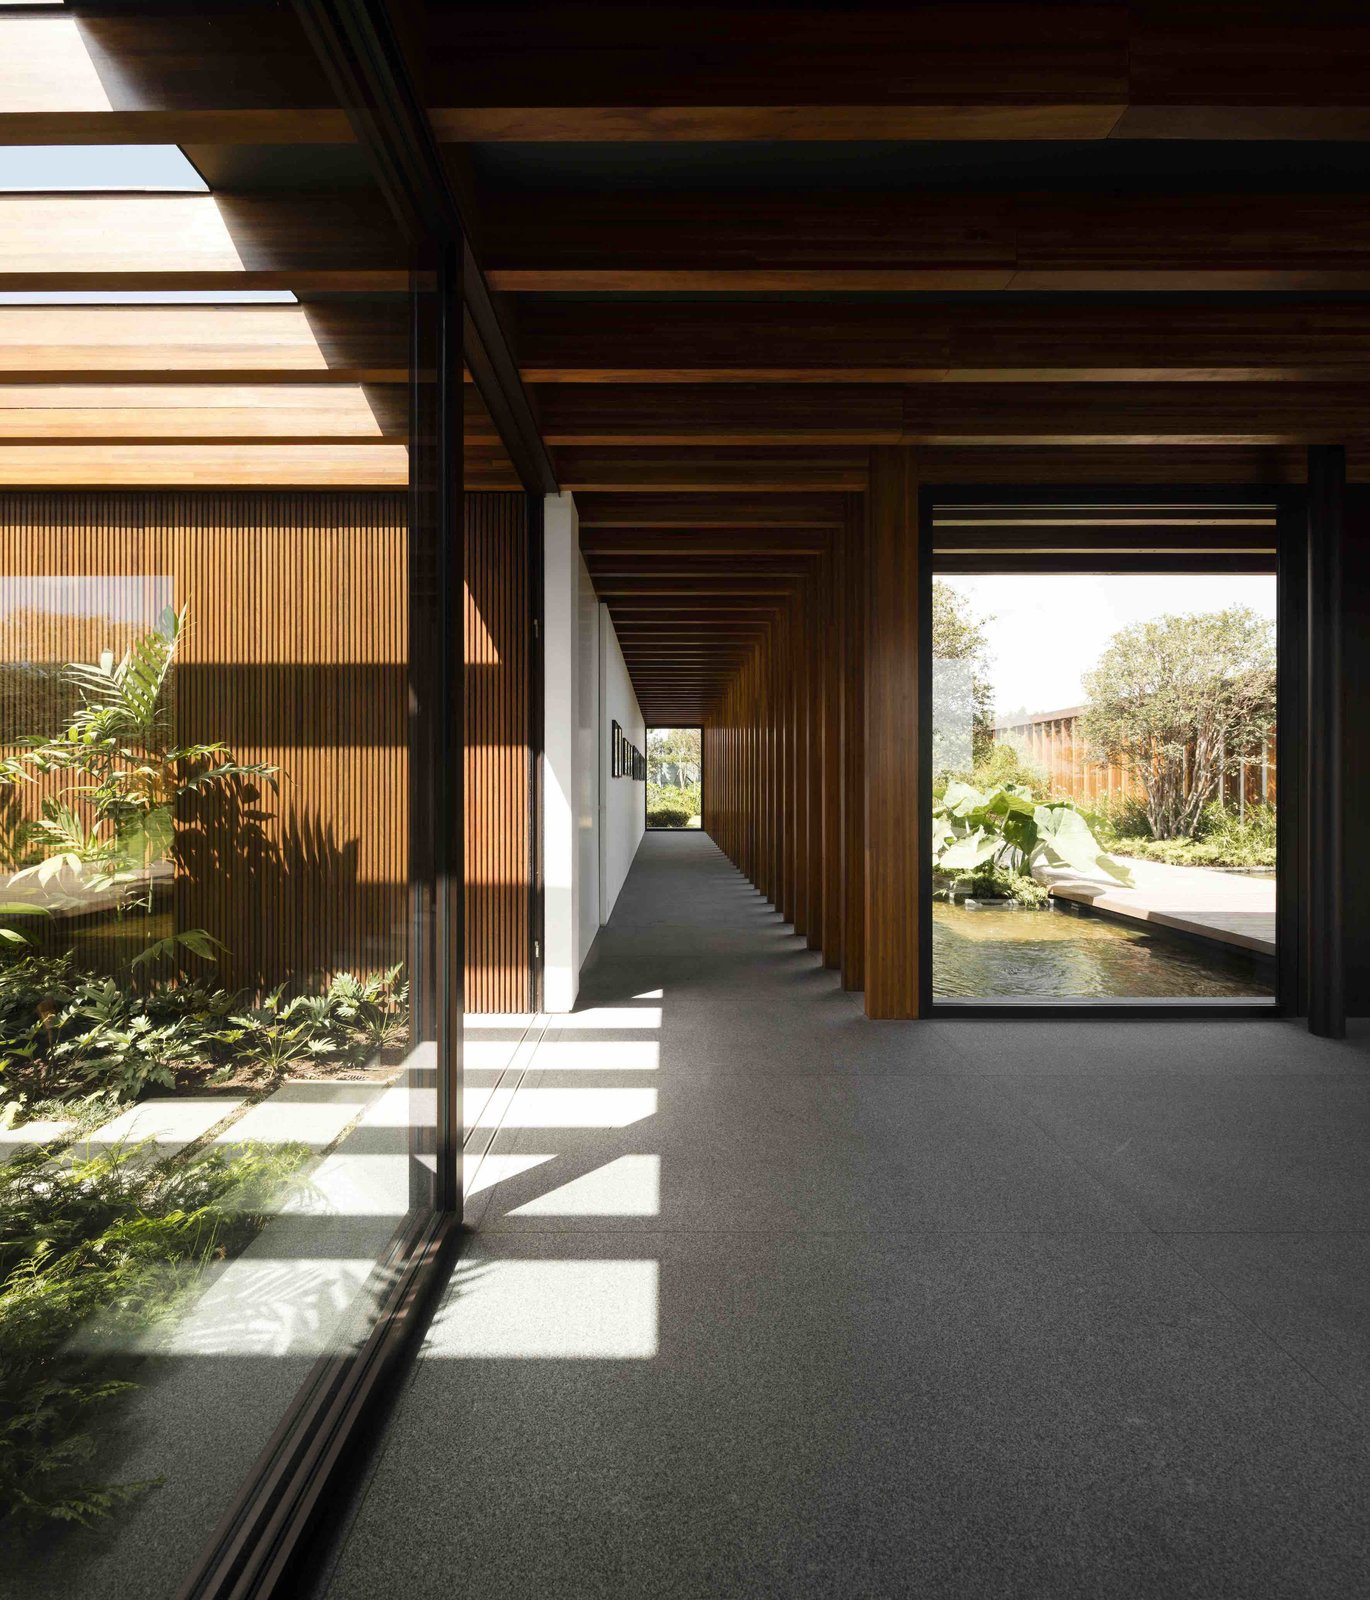 A Brazilian Home With a Touch of Japanese Zen